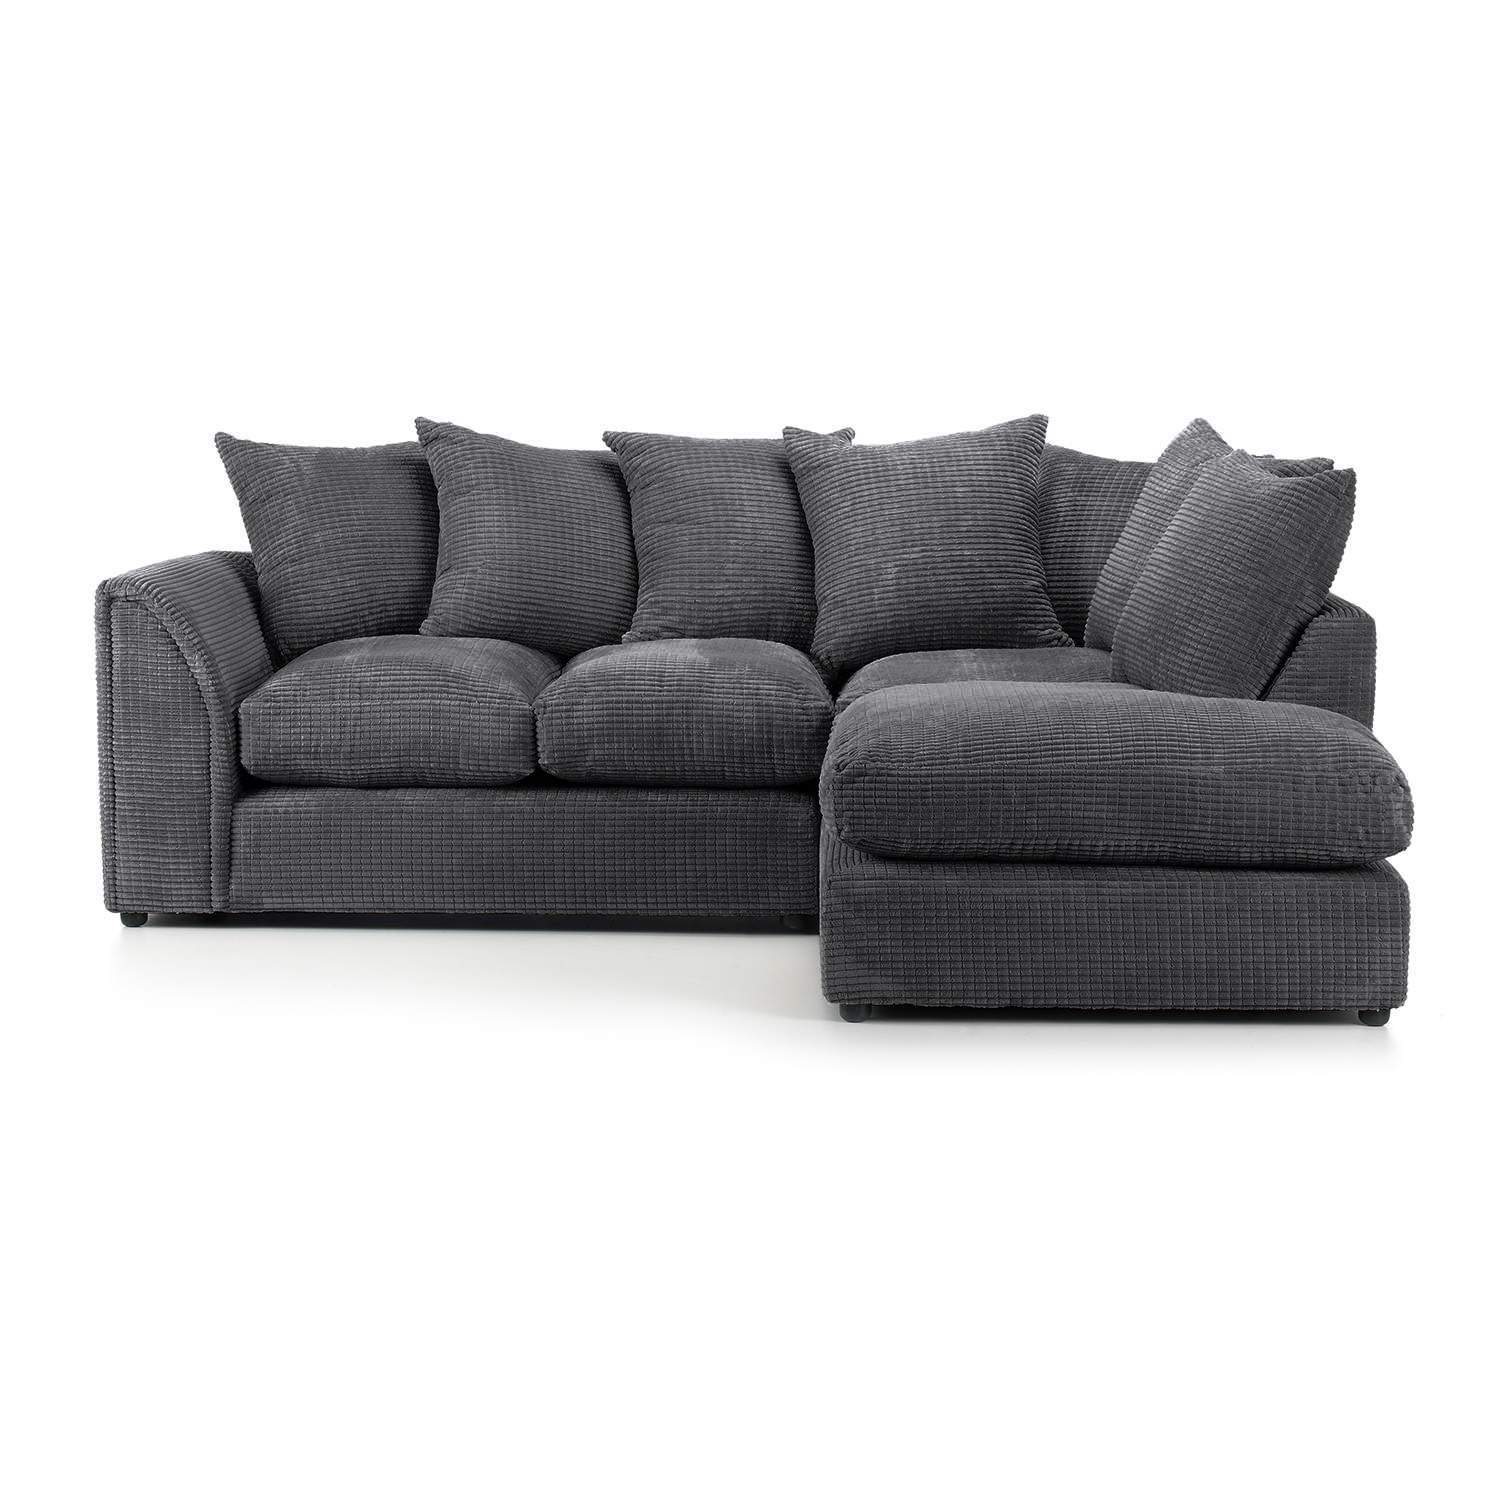 corner sofa friendu0027s email address * HWHFRTQ